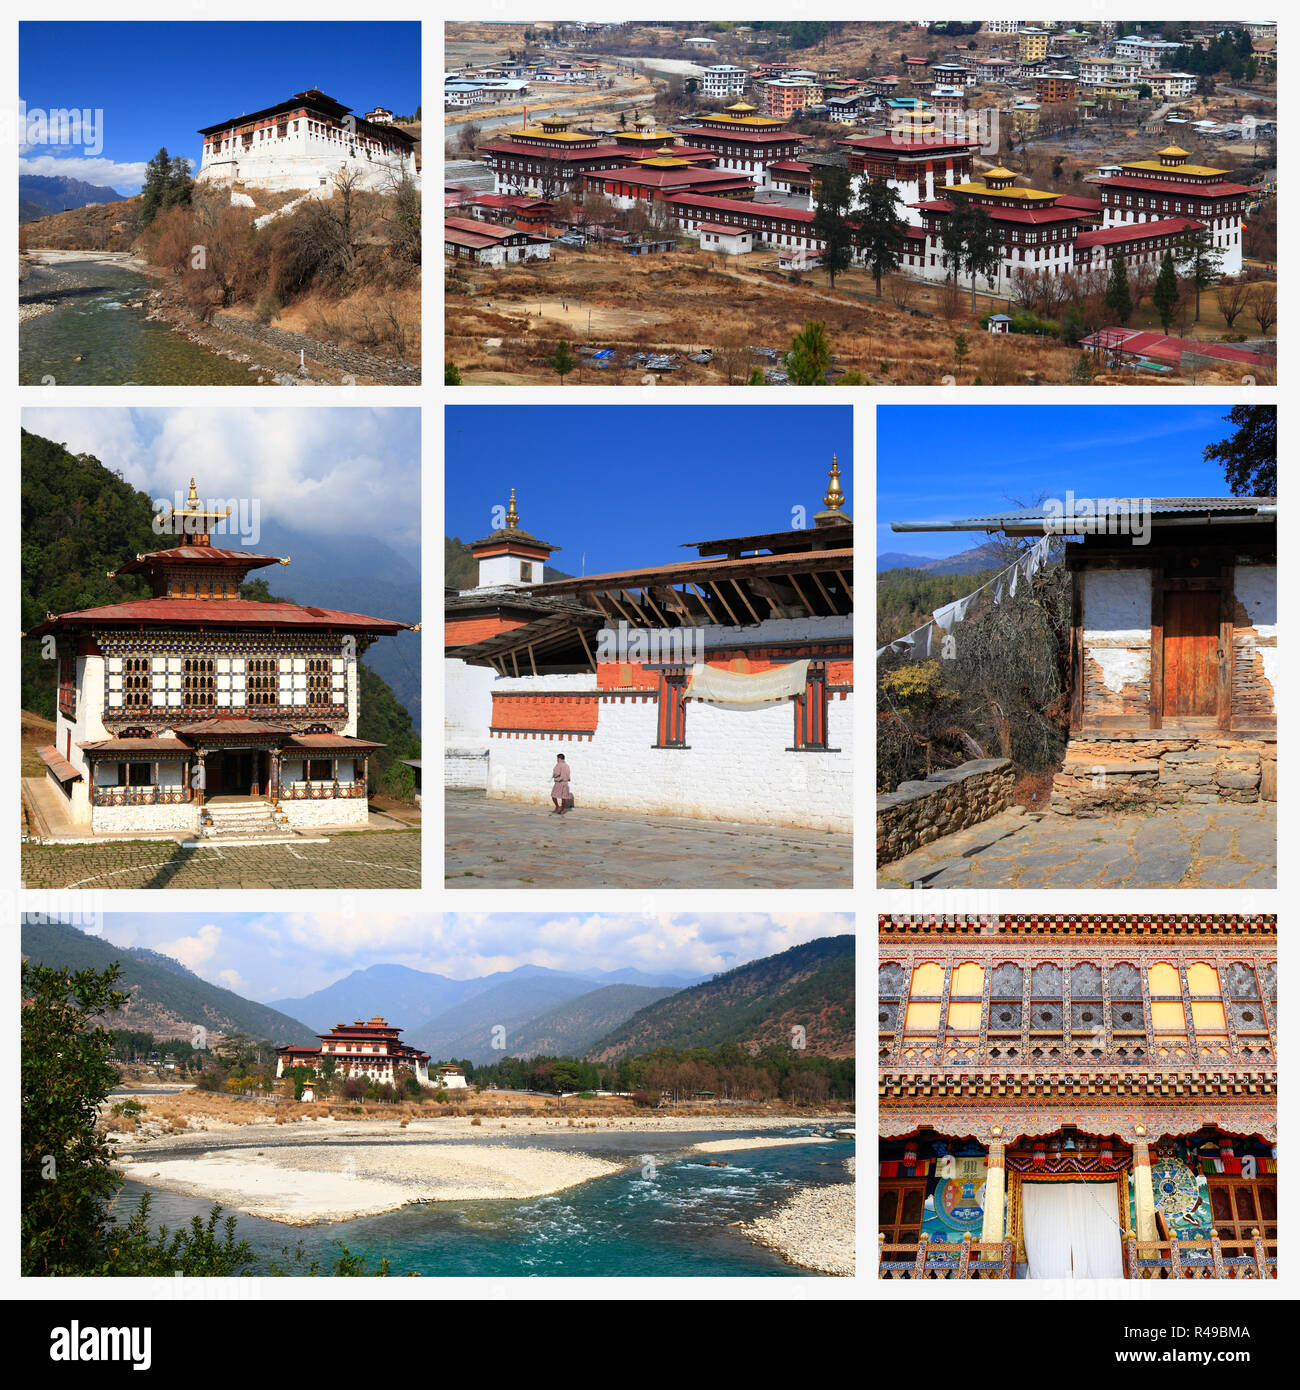 Impressions of Bhutan - Stock Image